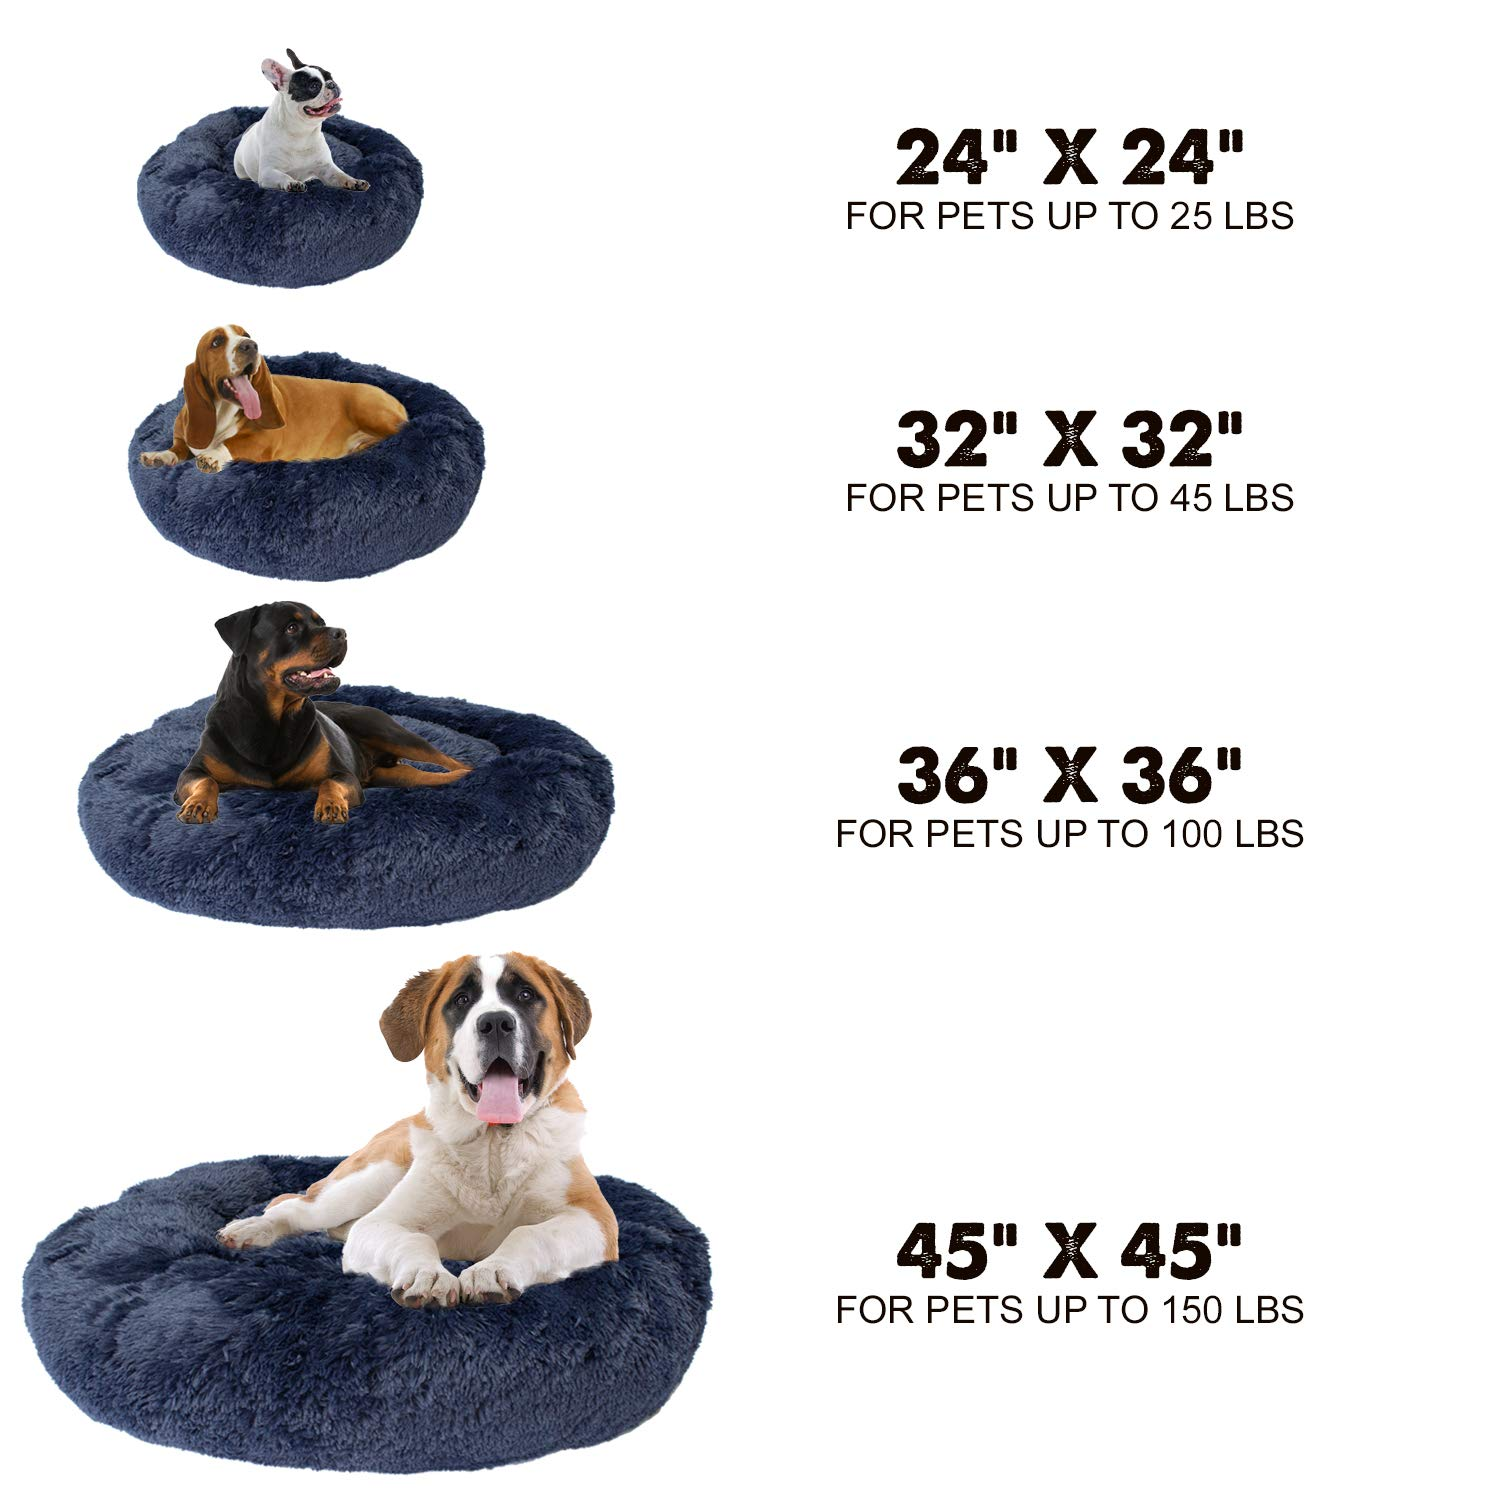 Premium Donut Dog Bed | Cozy Poof Style Giant Pet Bed Great for ...